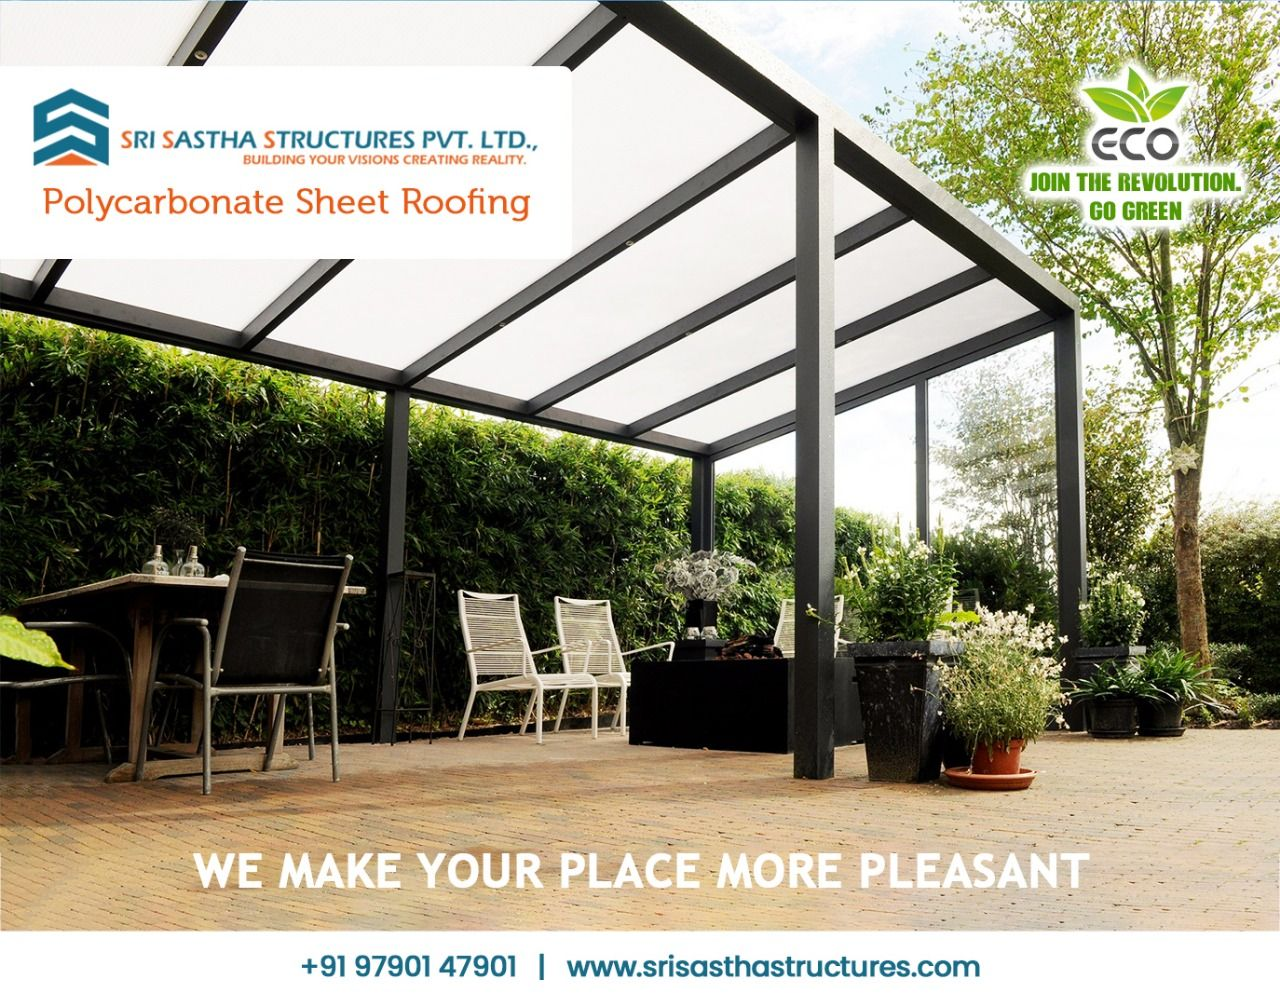 Polycarbonate Sheet Roofing Cool Roof Roofing Residential Roofing